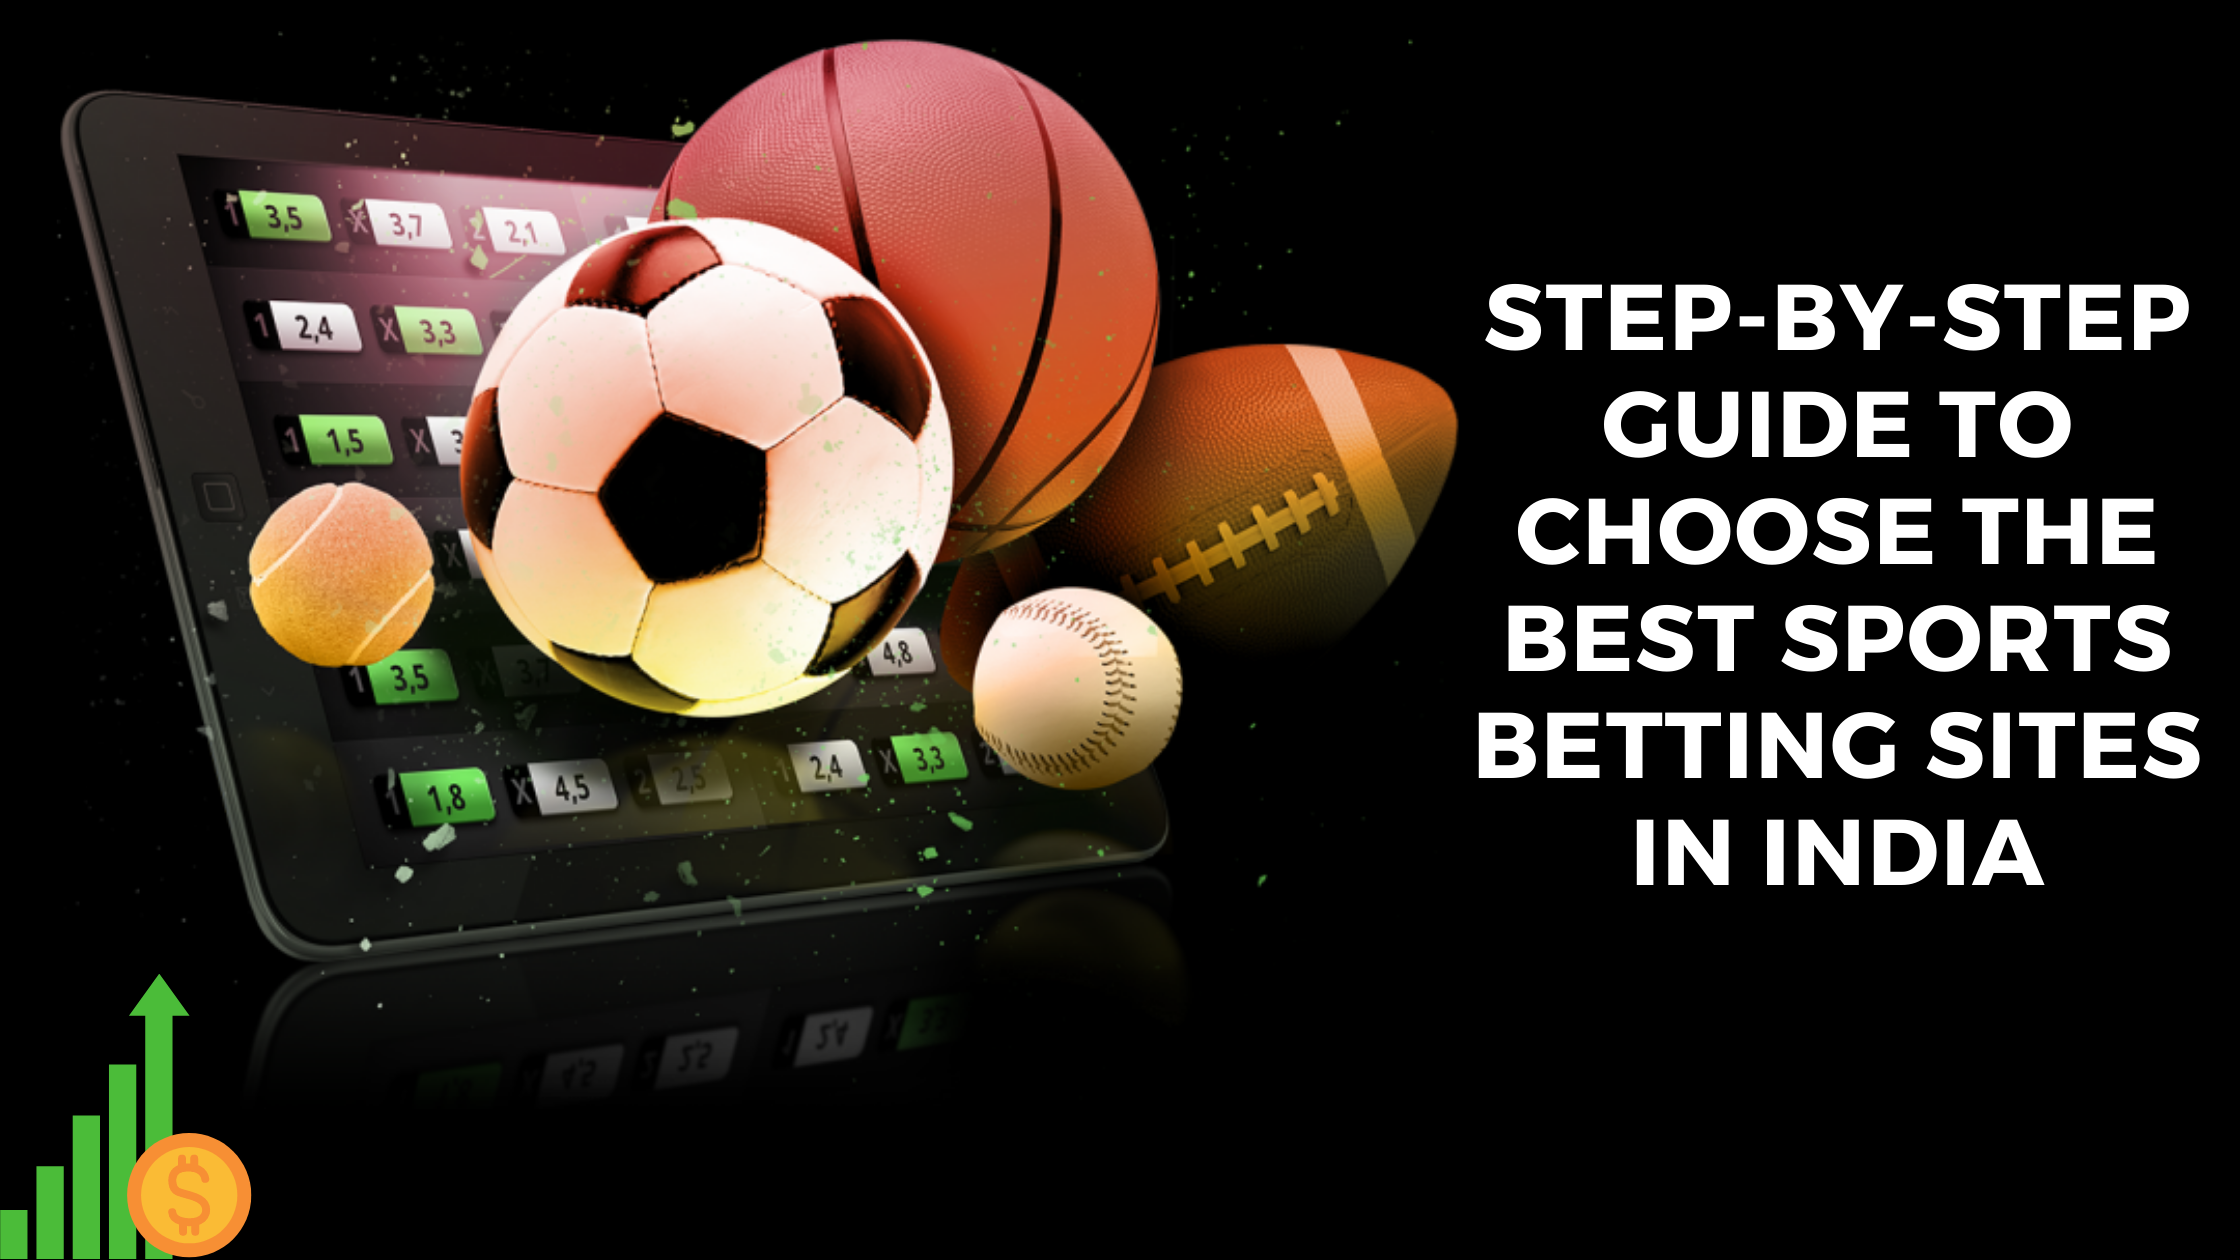 Step-By-Step Guide to Choose the Best Sports Betting Sites in India